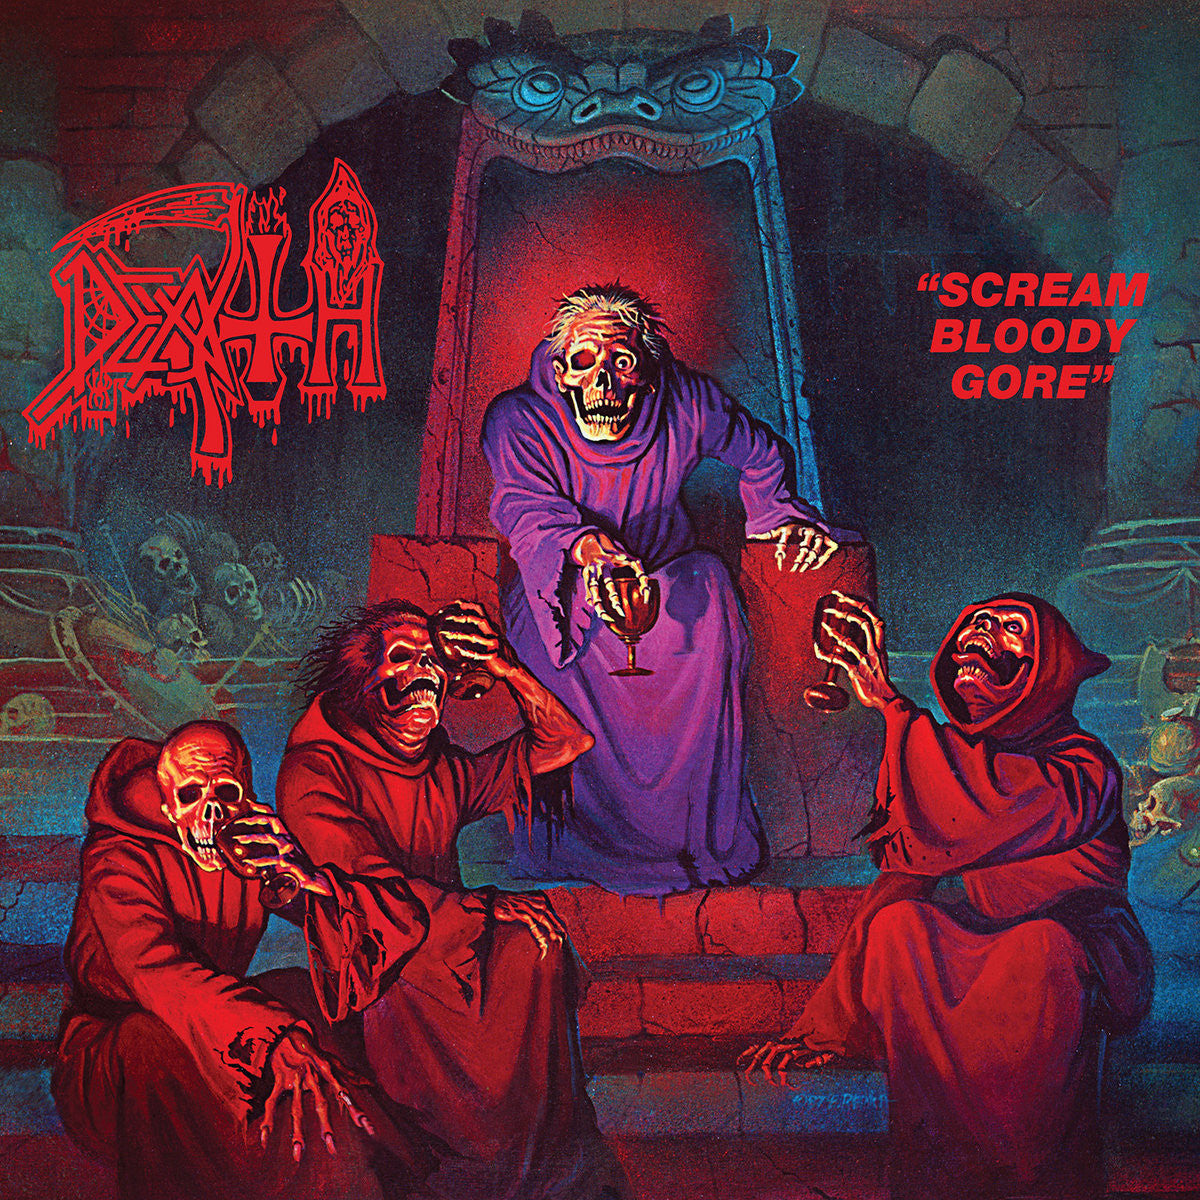 Death - Scream Bloody Gore - New Vinyl Record 2016 Relapse Records Reissue - Metal